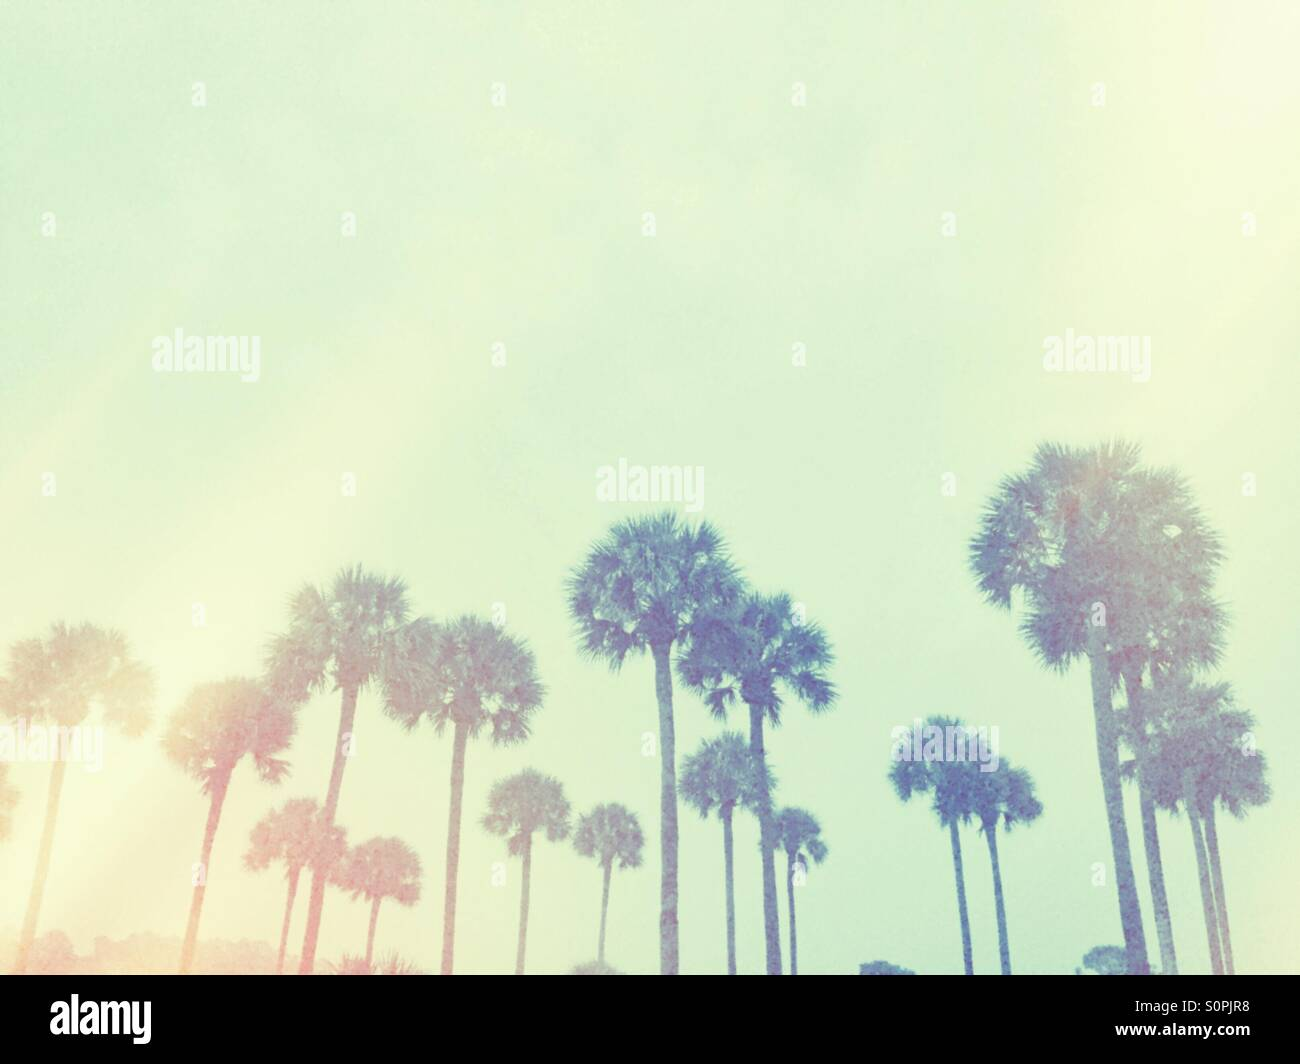 Align of Palmeadow trees against a gray South Carolina sky. - Stock Image